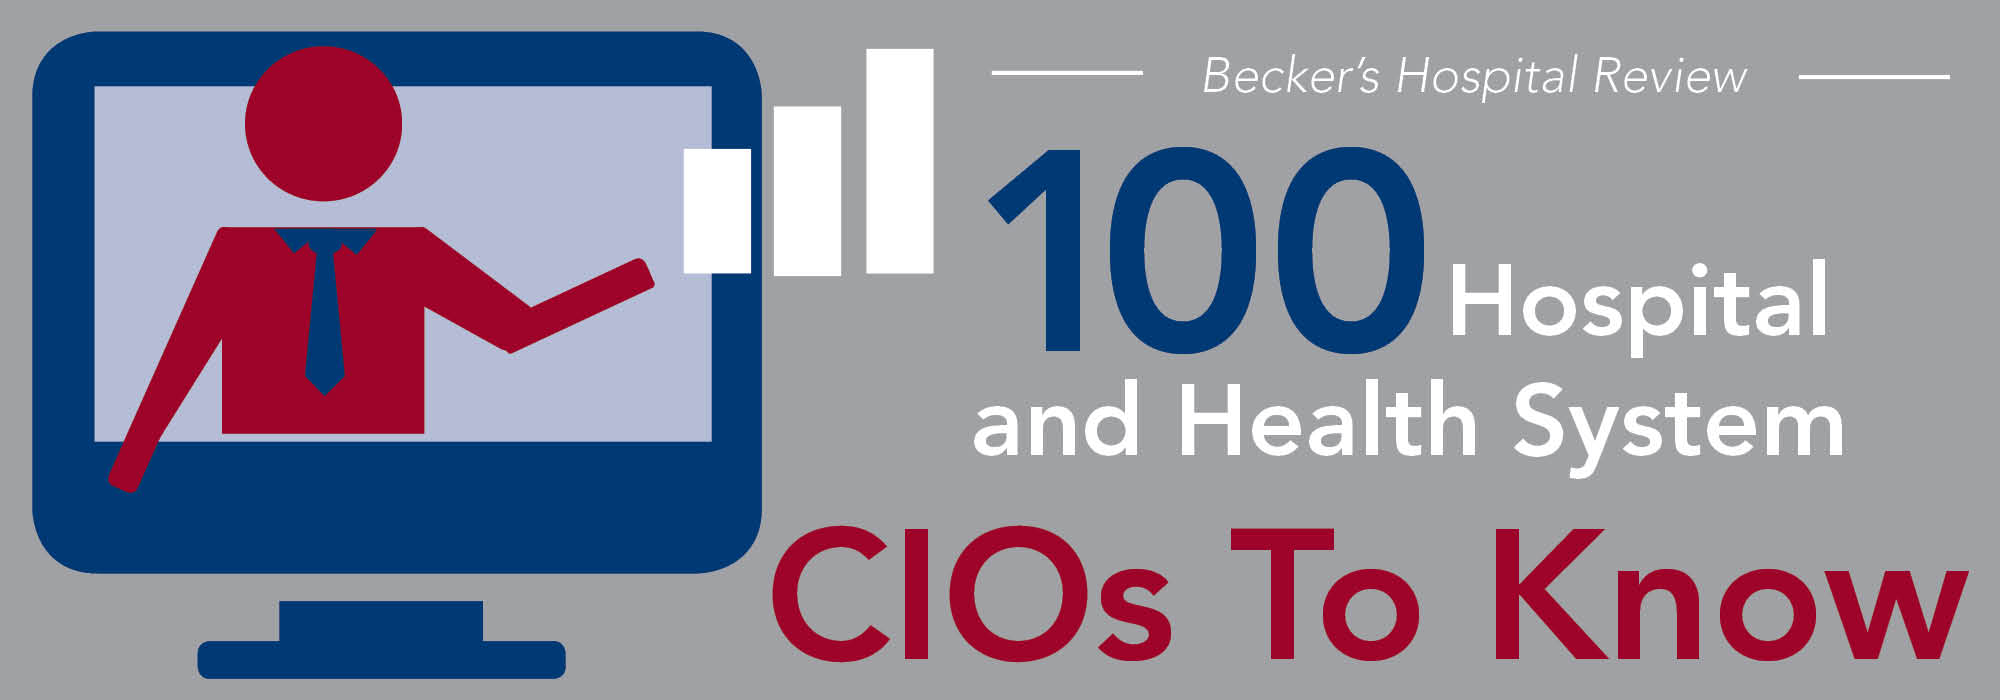 2016-CIOs-to-Know